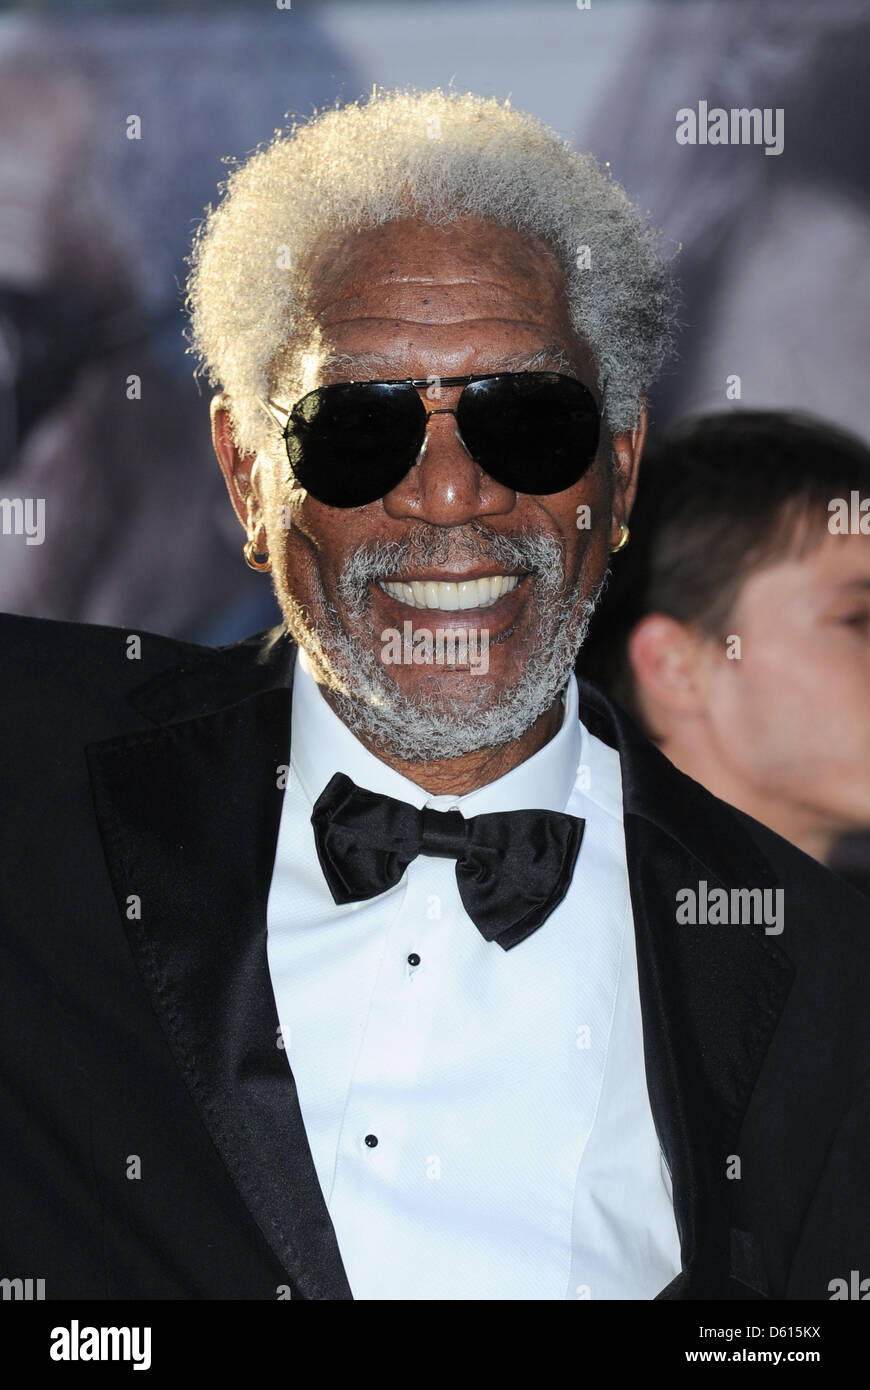 Los Angeles, California, USA. 10th April 2013. Morgan Freeman arrives at the Oblivion film premiere in Los Angeles, - Stock Image